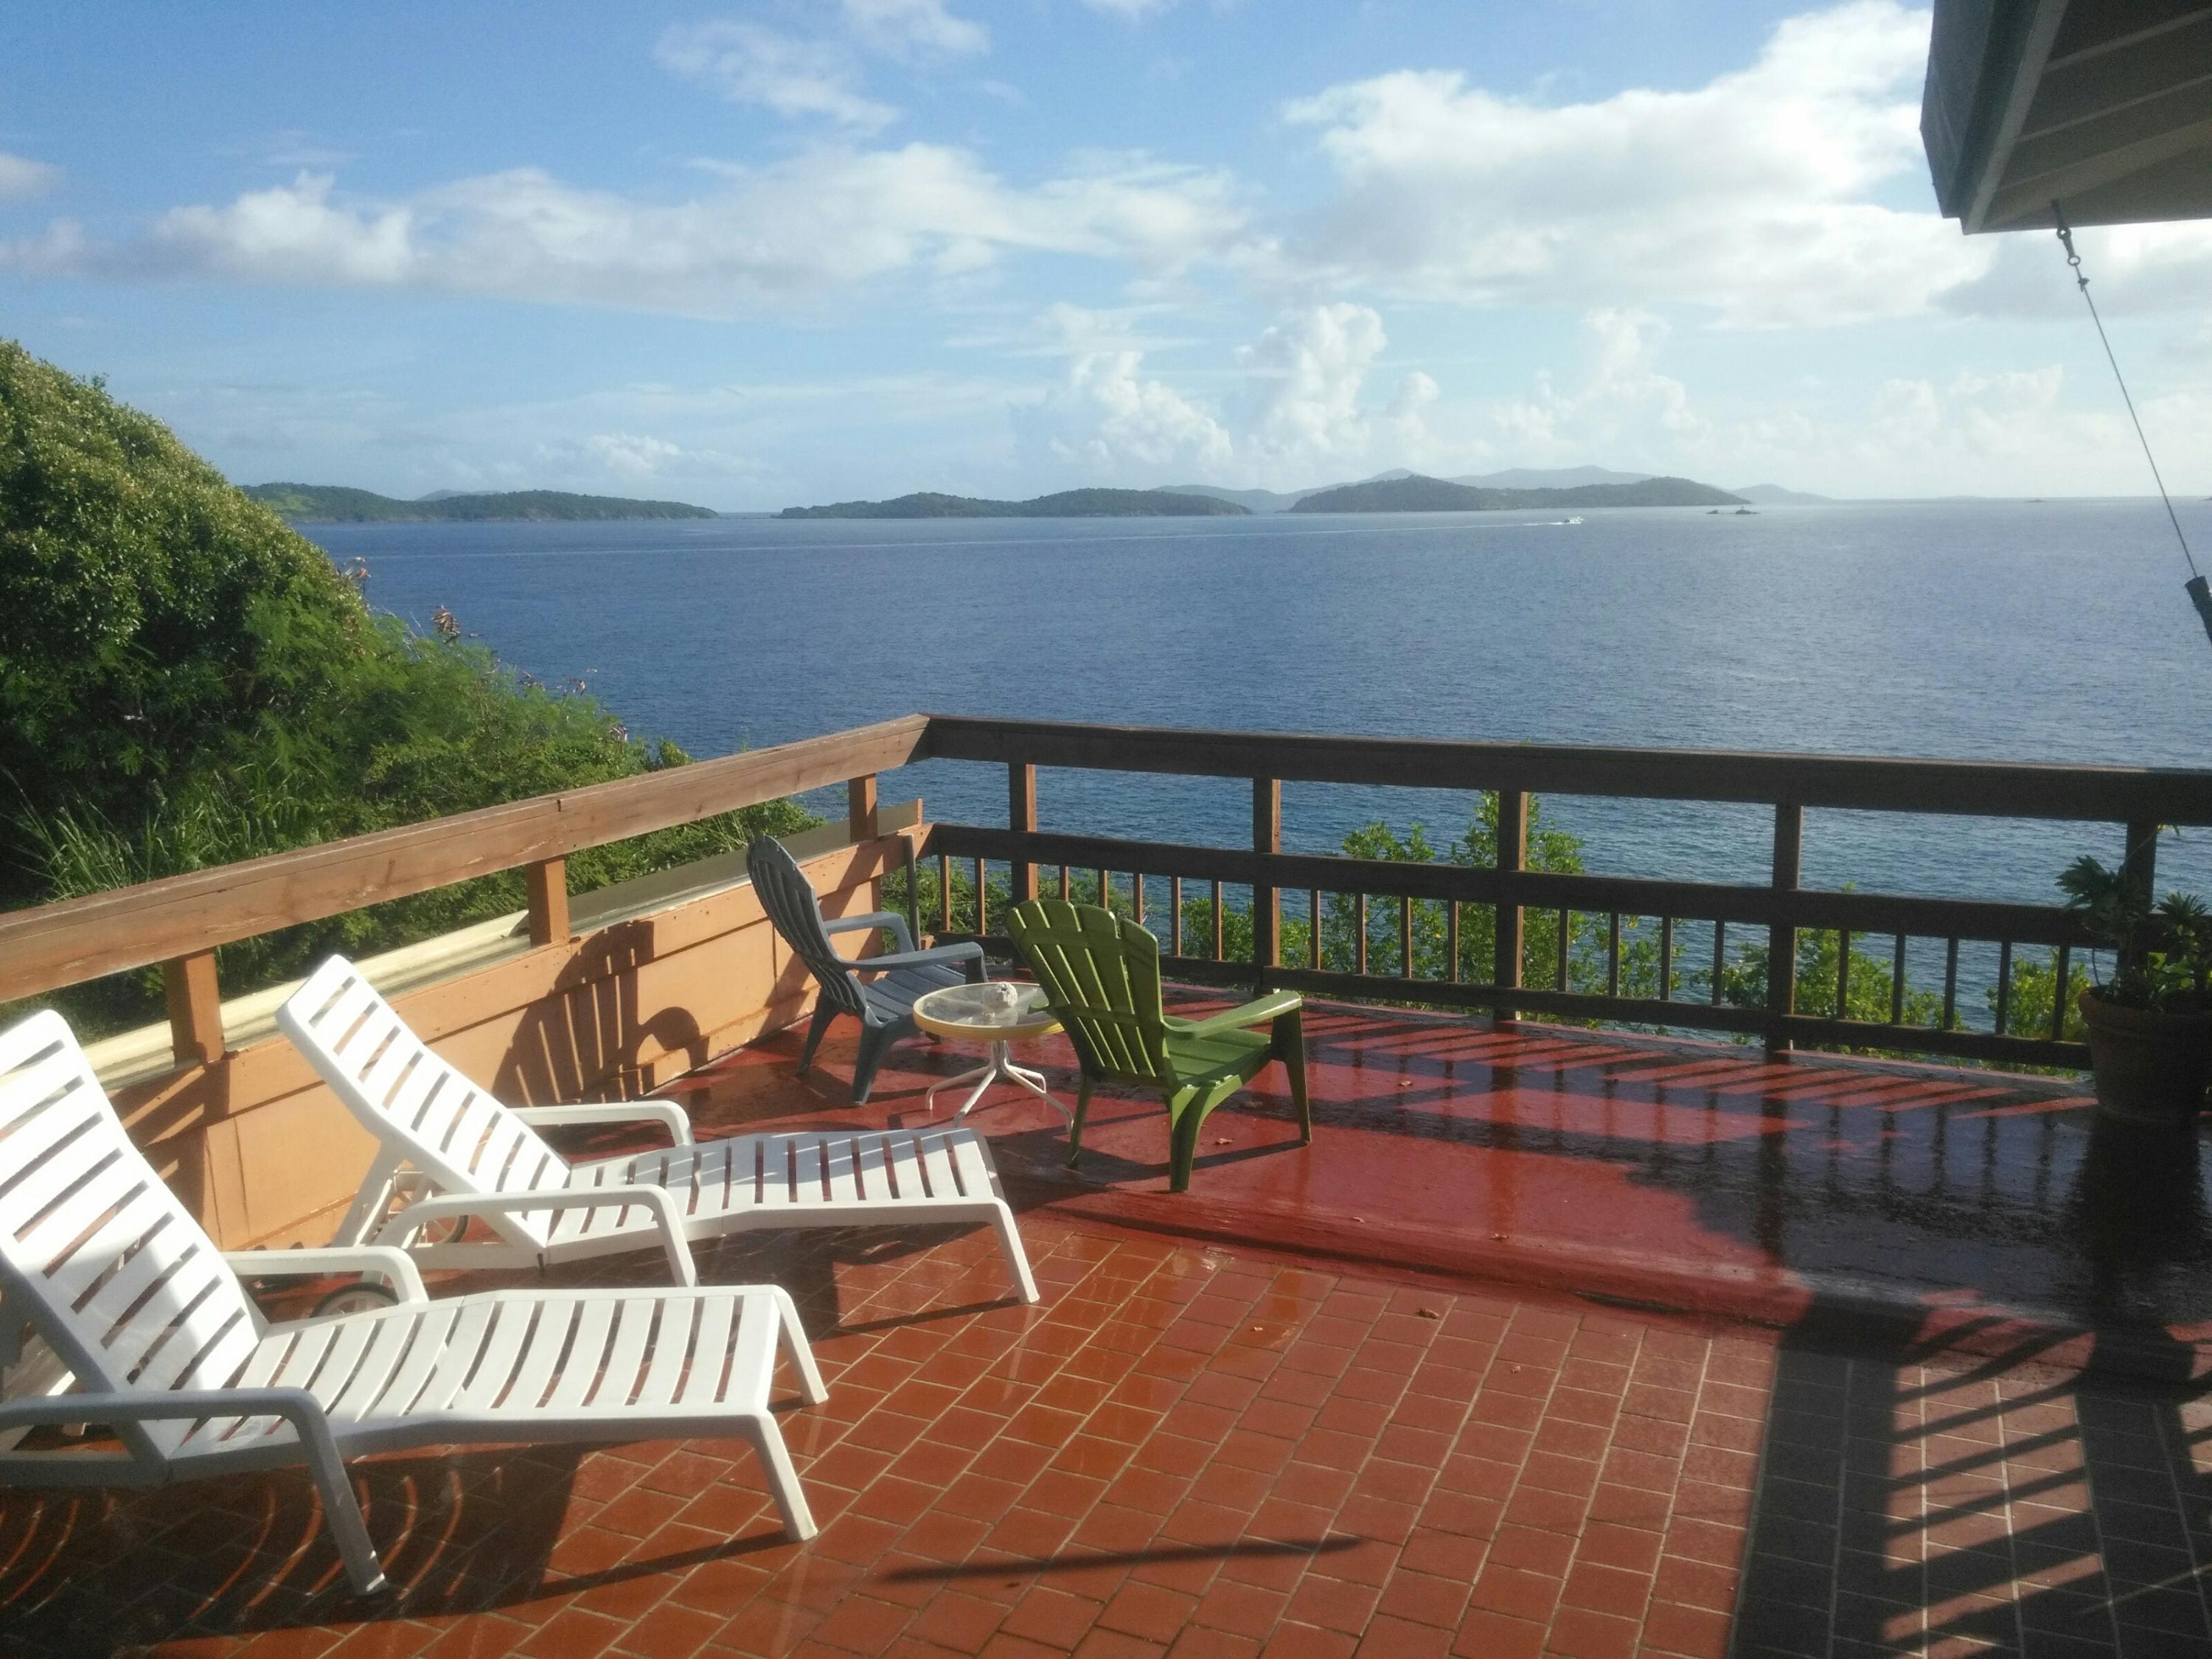 Excellent Cabrita point virgin islands